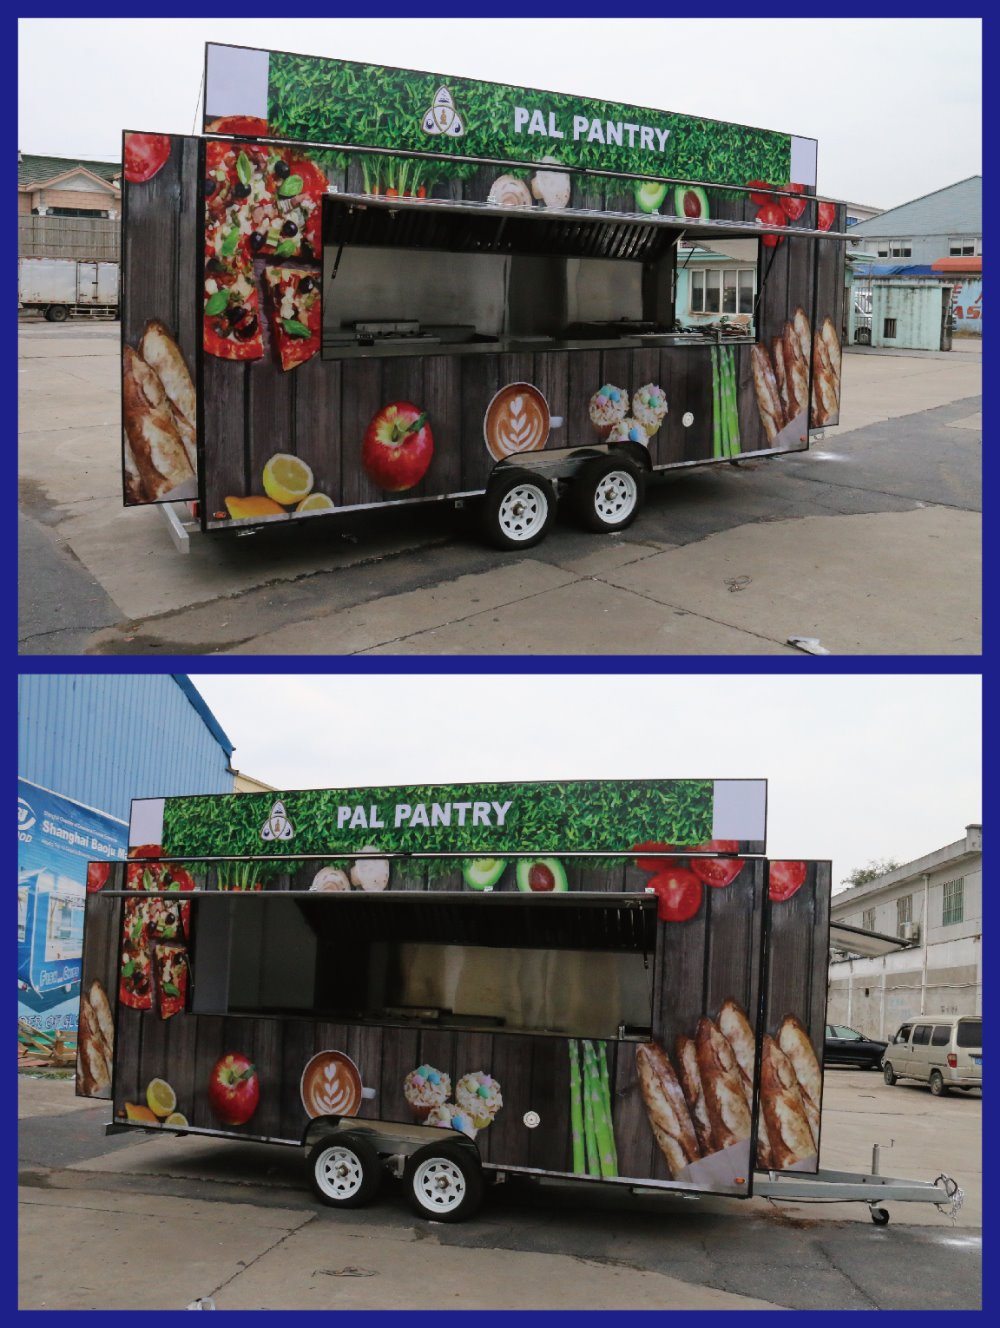 45c7a0cd1a FV-55 food truck for sale in ga bbq food trailer for sale mobile fast